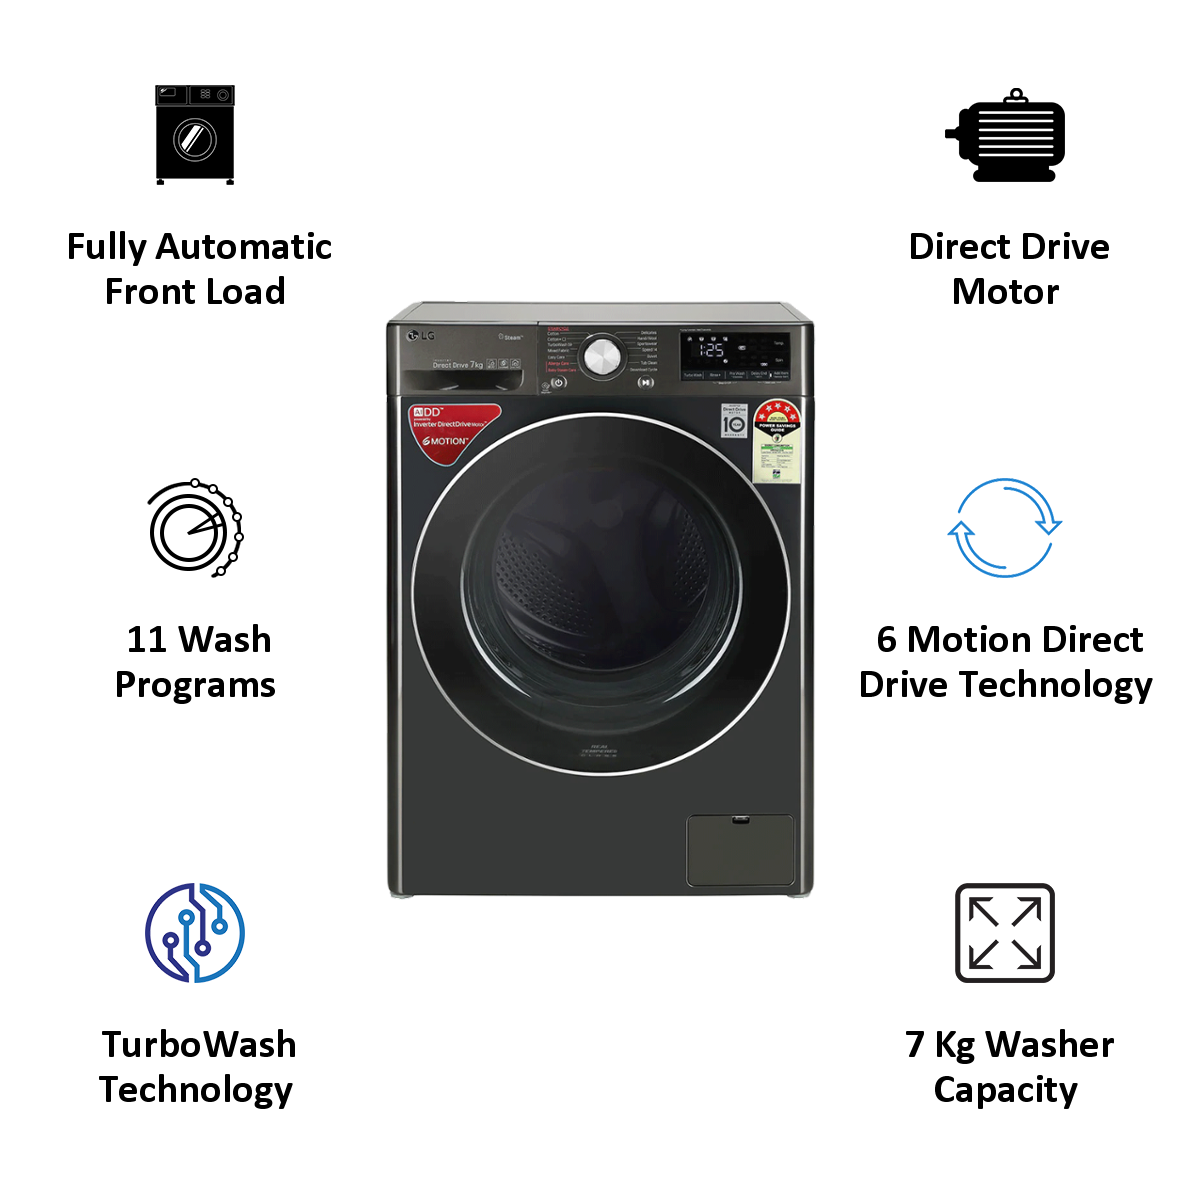 LG 7 kg 5 Star Fully Automatic Front Load Washing Machine (AI Direct Drive Technology, FHV1207ZWB, Black Steel) 5